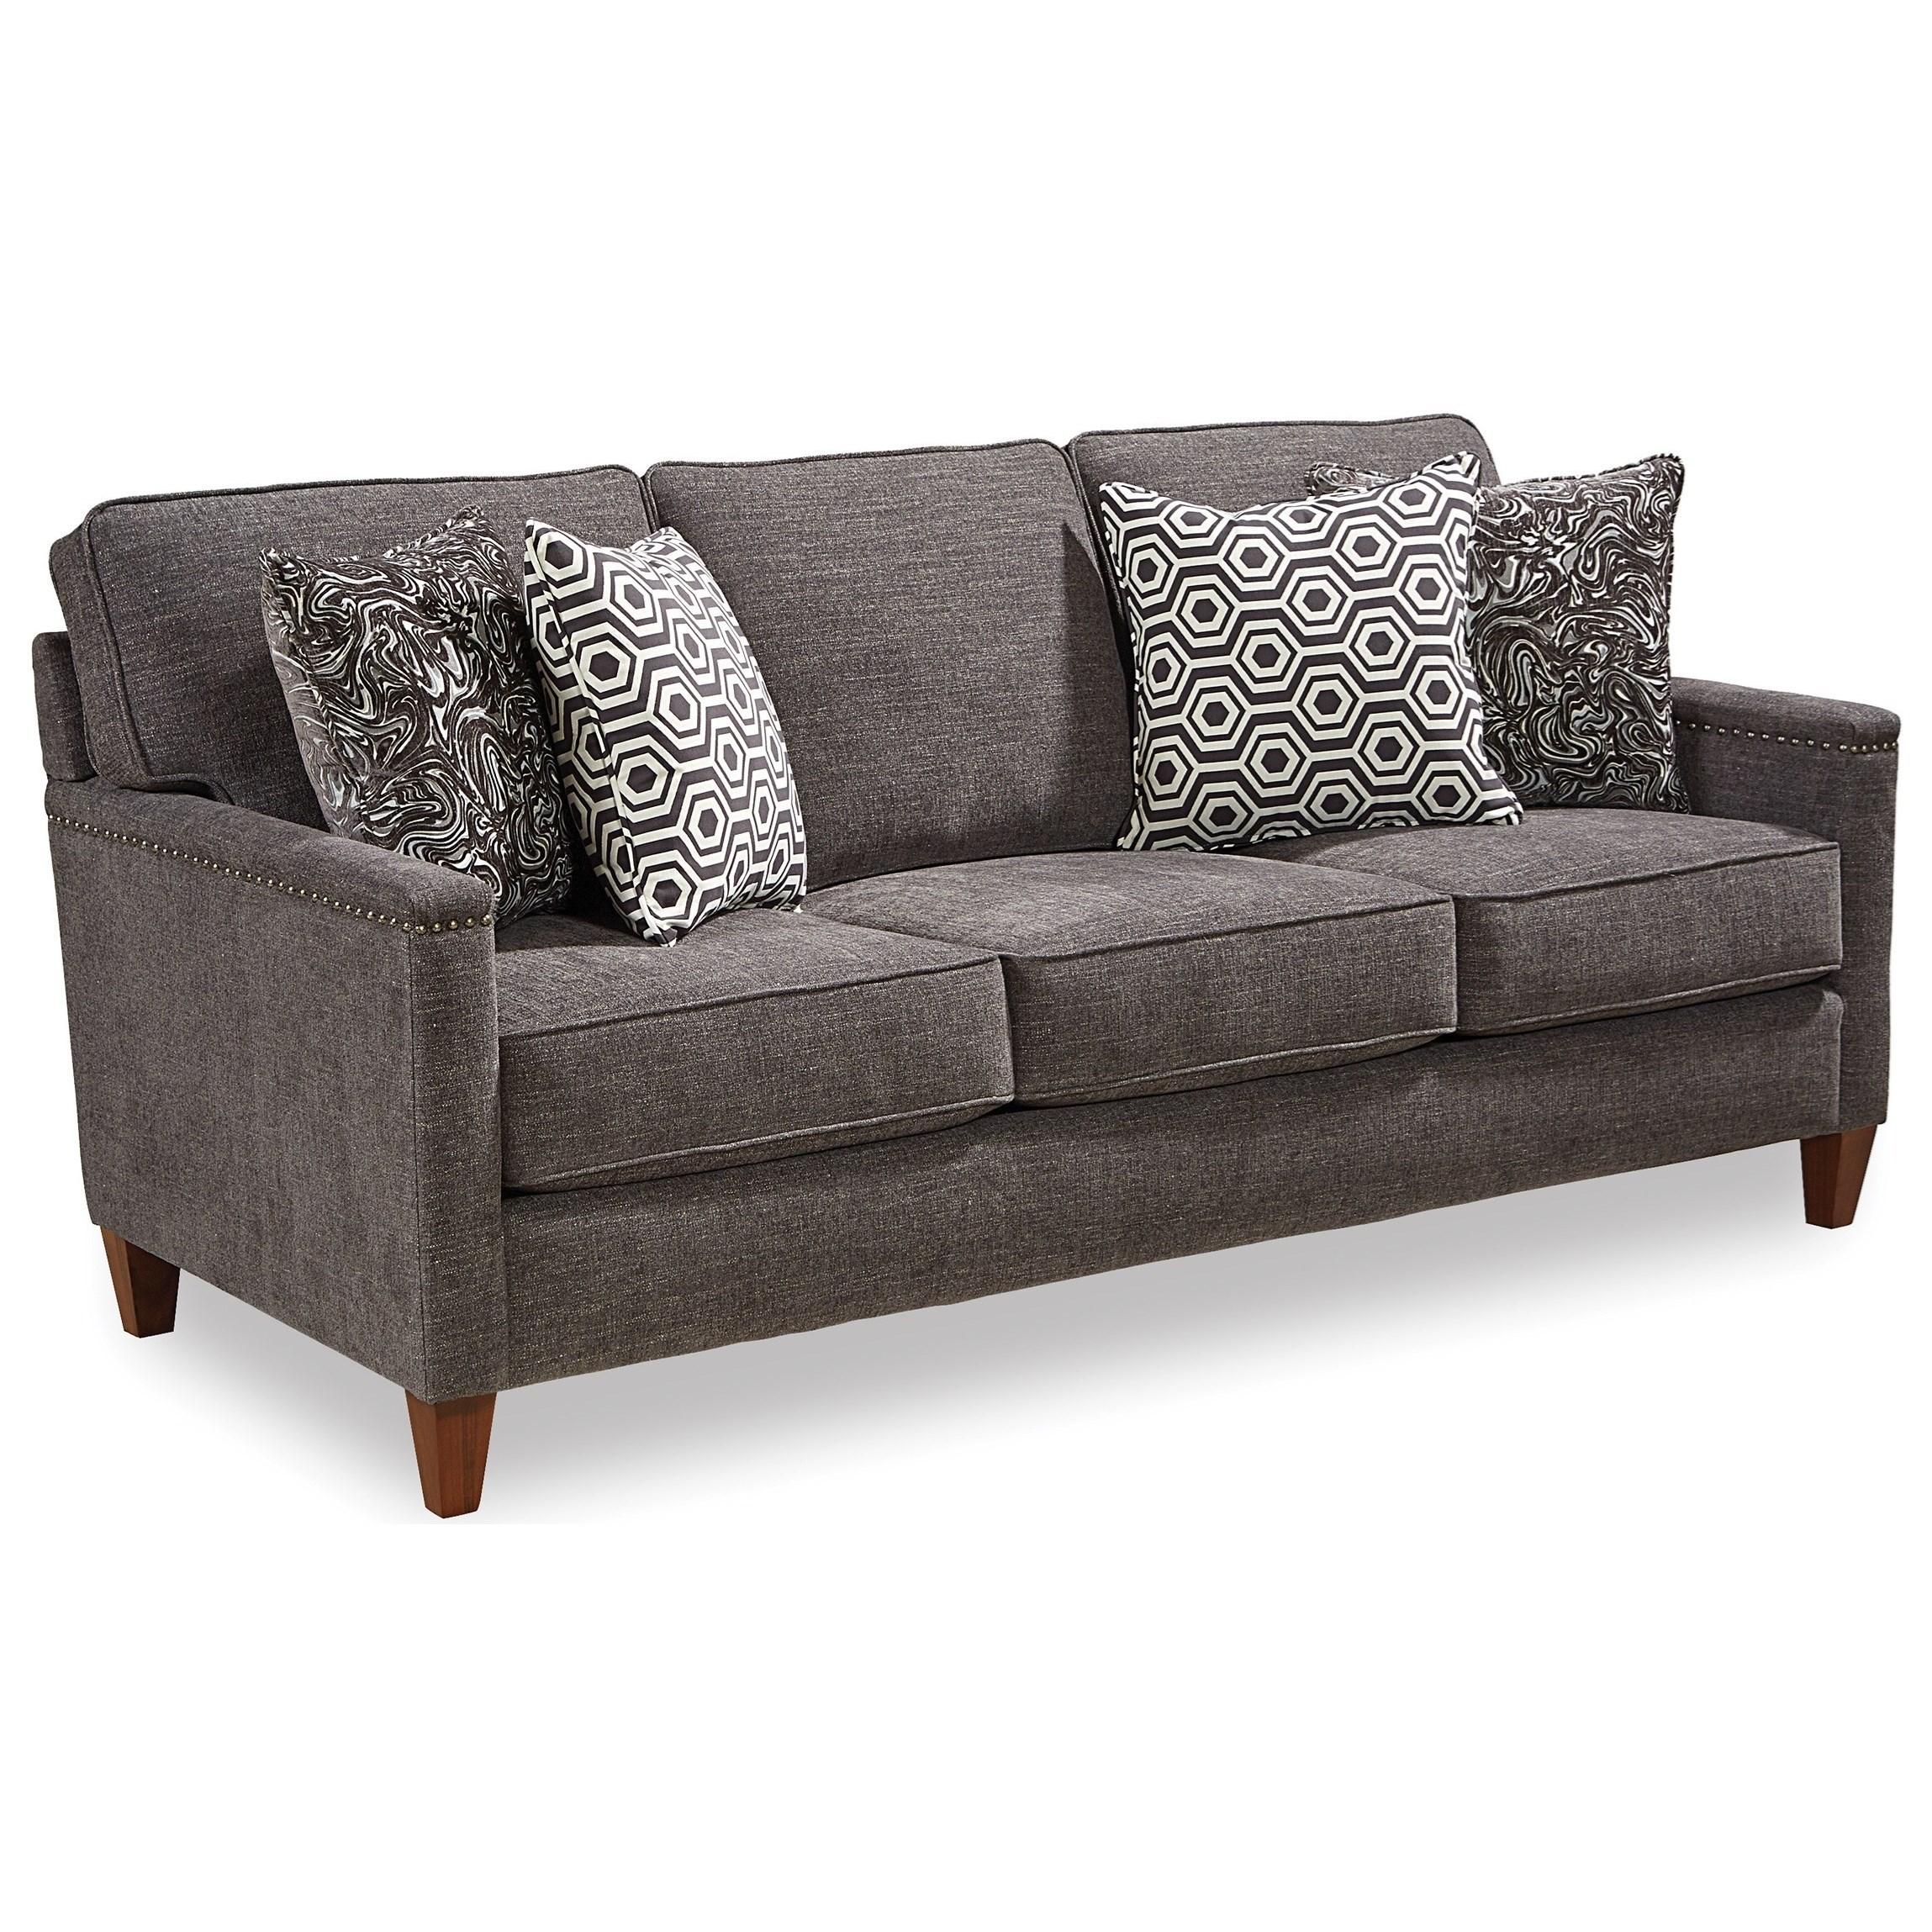 Fifth Avenue Contemporary Sofa With Track Arms And Nailhead Trim By  Broyhill Express